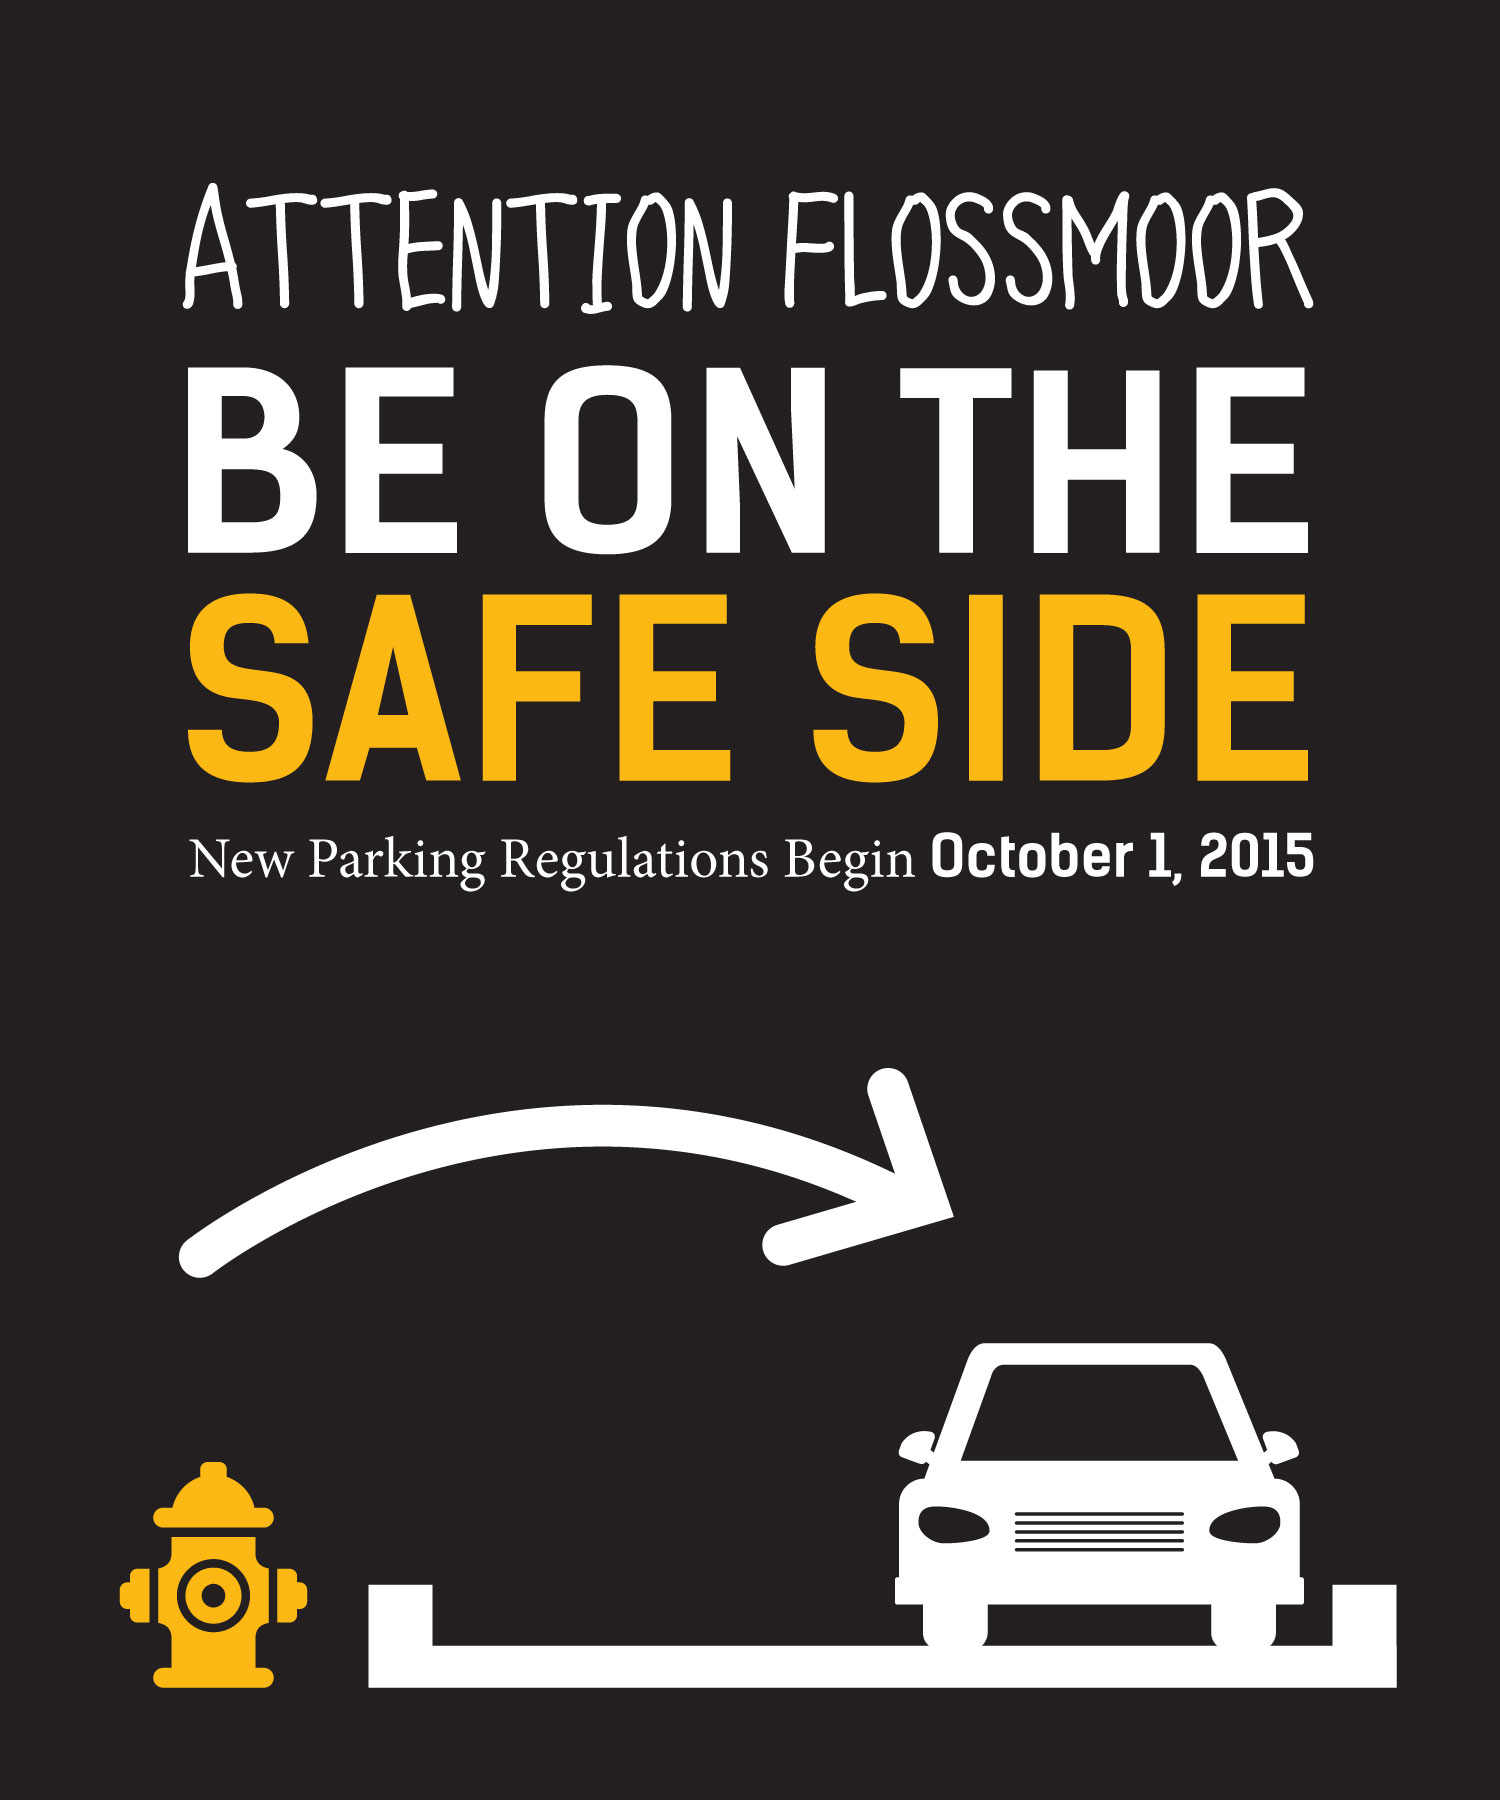 Attention Flossmoor: Be on the Safe Side. New Parking Regulations Begin October 1, 2015.